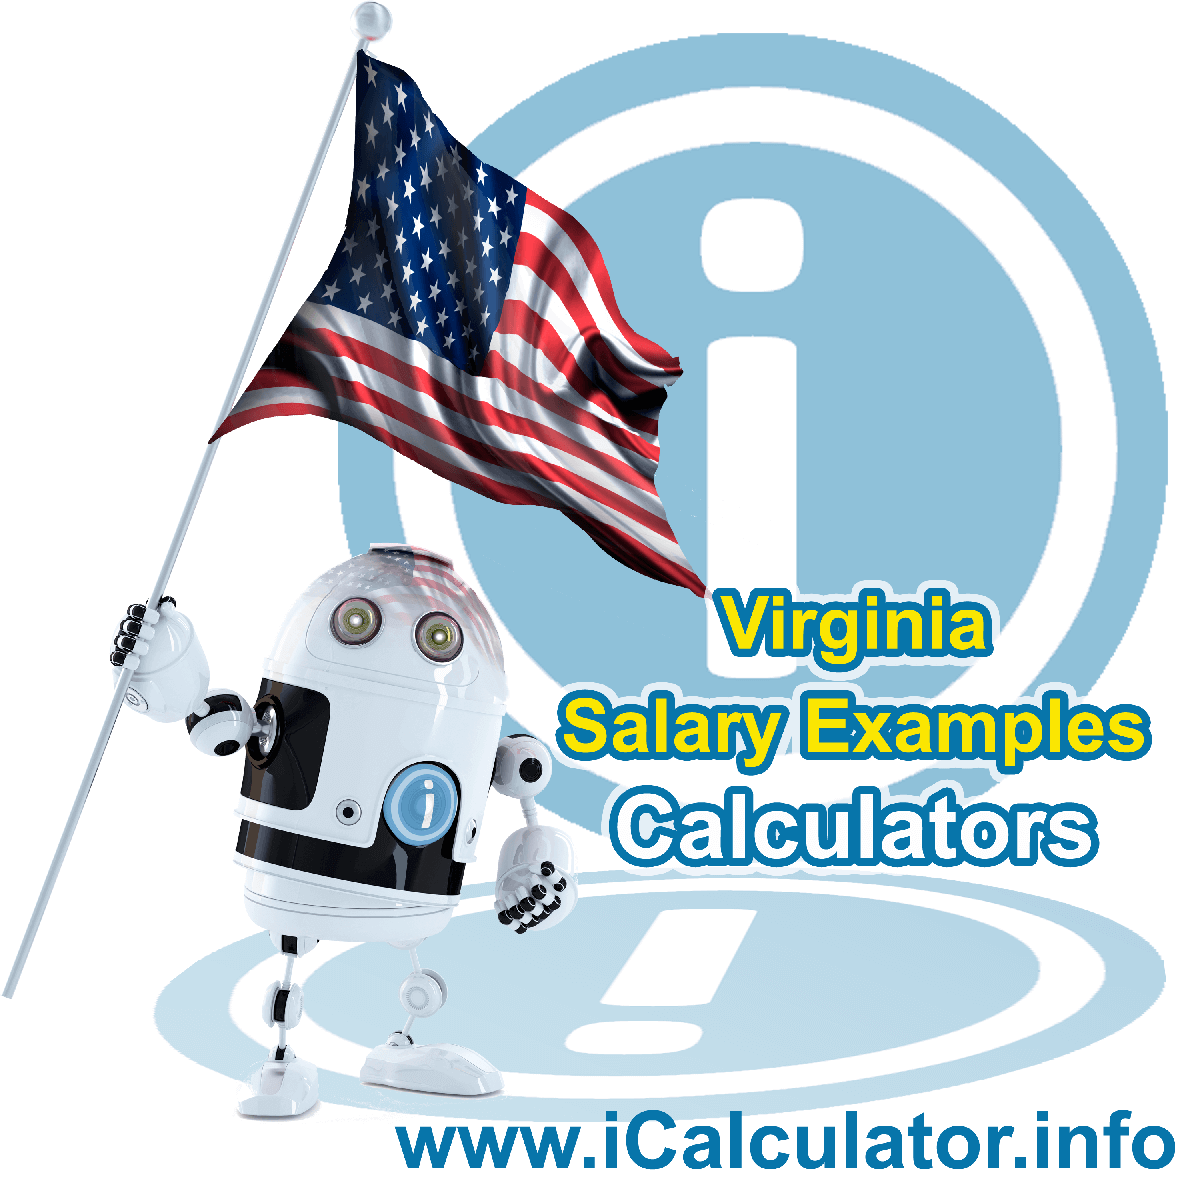 Virginia Salary Example for $90,000.00 in 2021 | iCalculator | $90,000.00 salary example for employee and employer paying Virginia State tincome taxes. Detailed salary after tax calculation including Virginia State Tax, Federal State Tax, Medicare Deductions, Social Security, Capital Gains and other income tax and salary deductions complete with supporting Virginia state tax tables